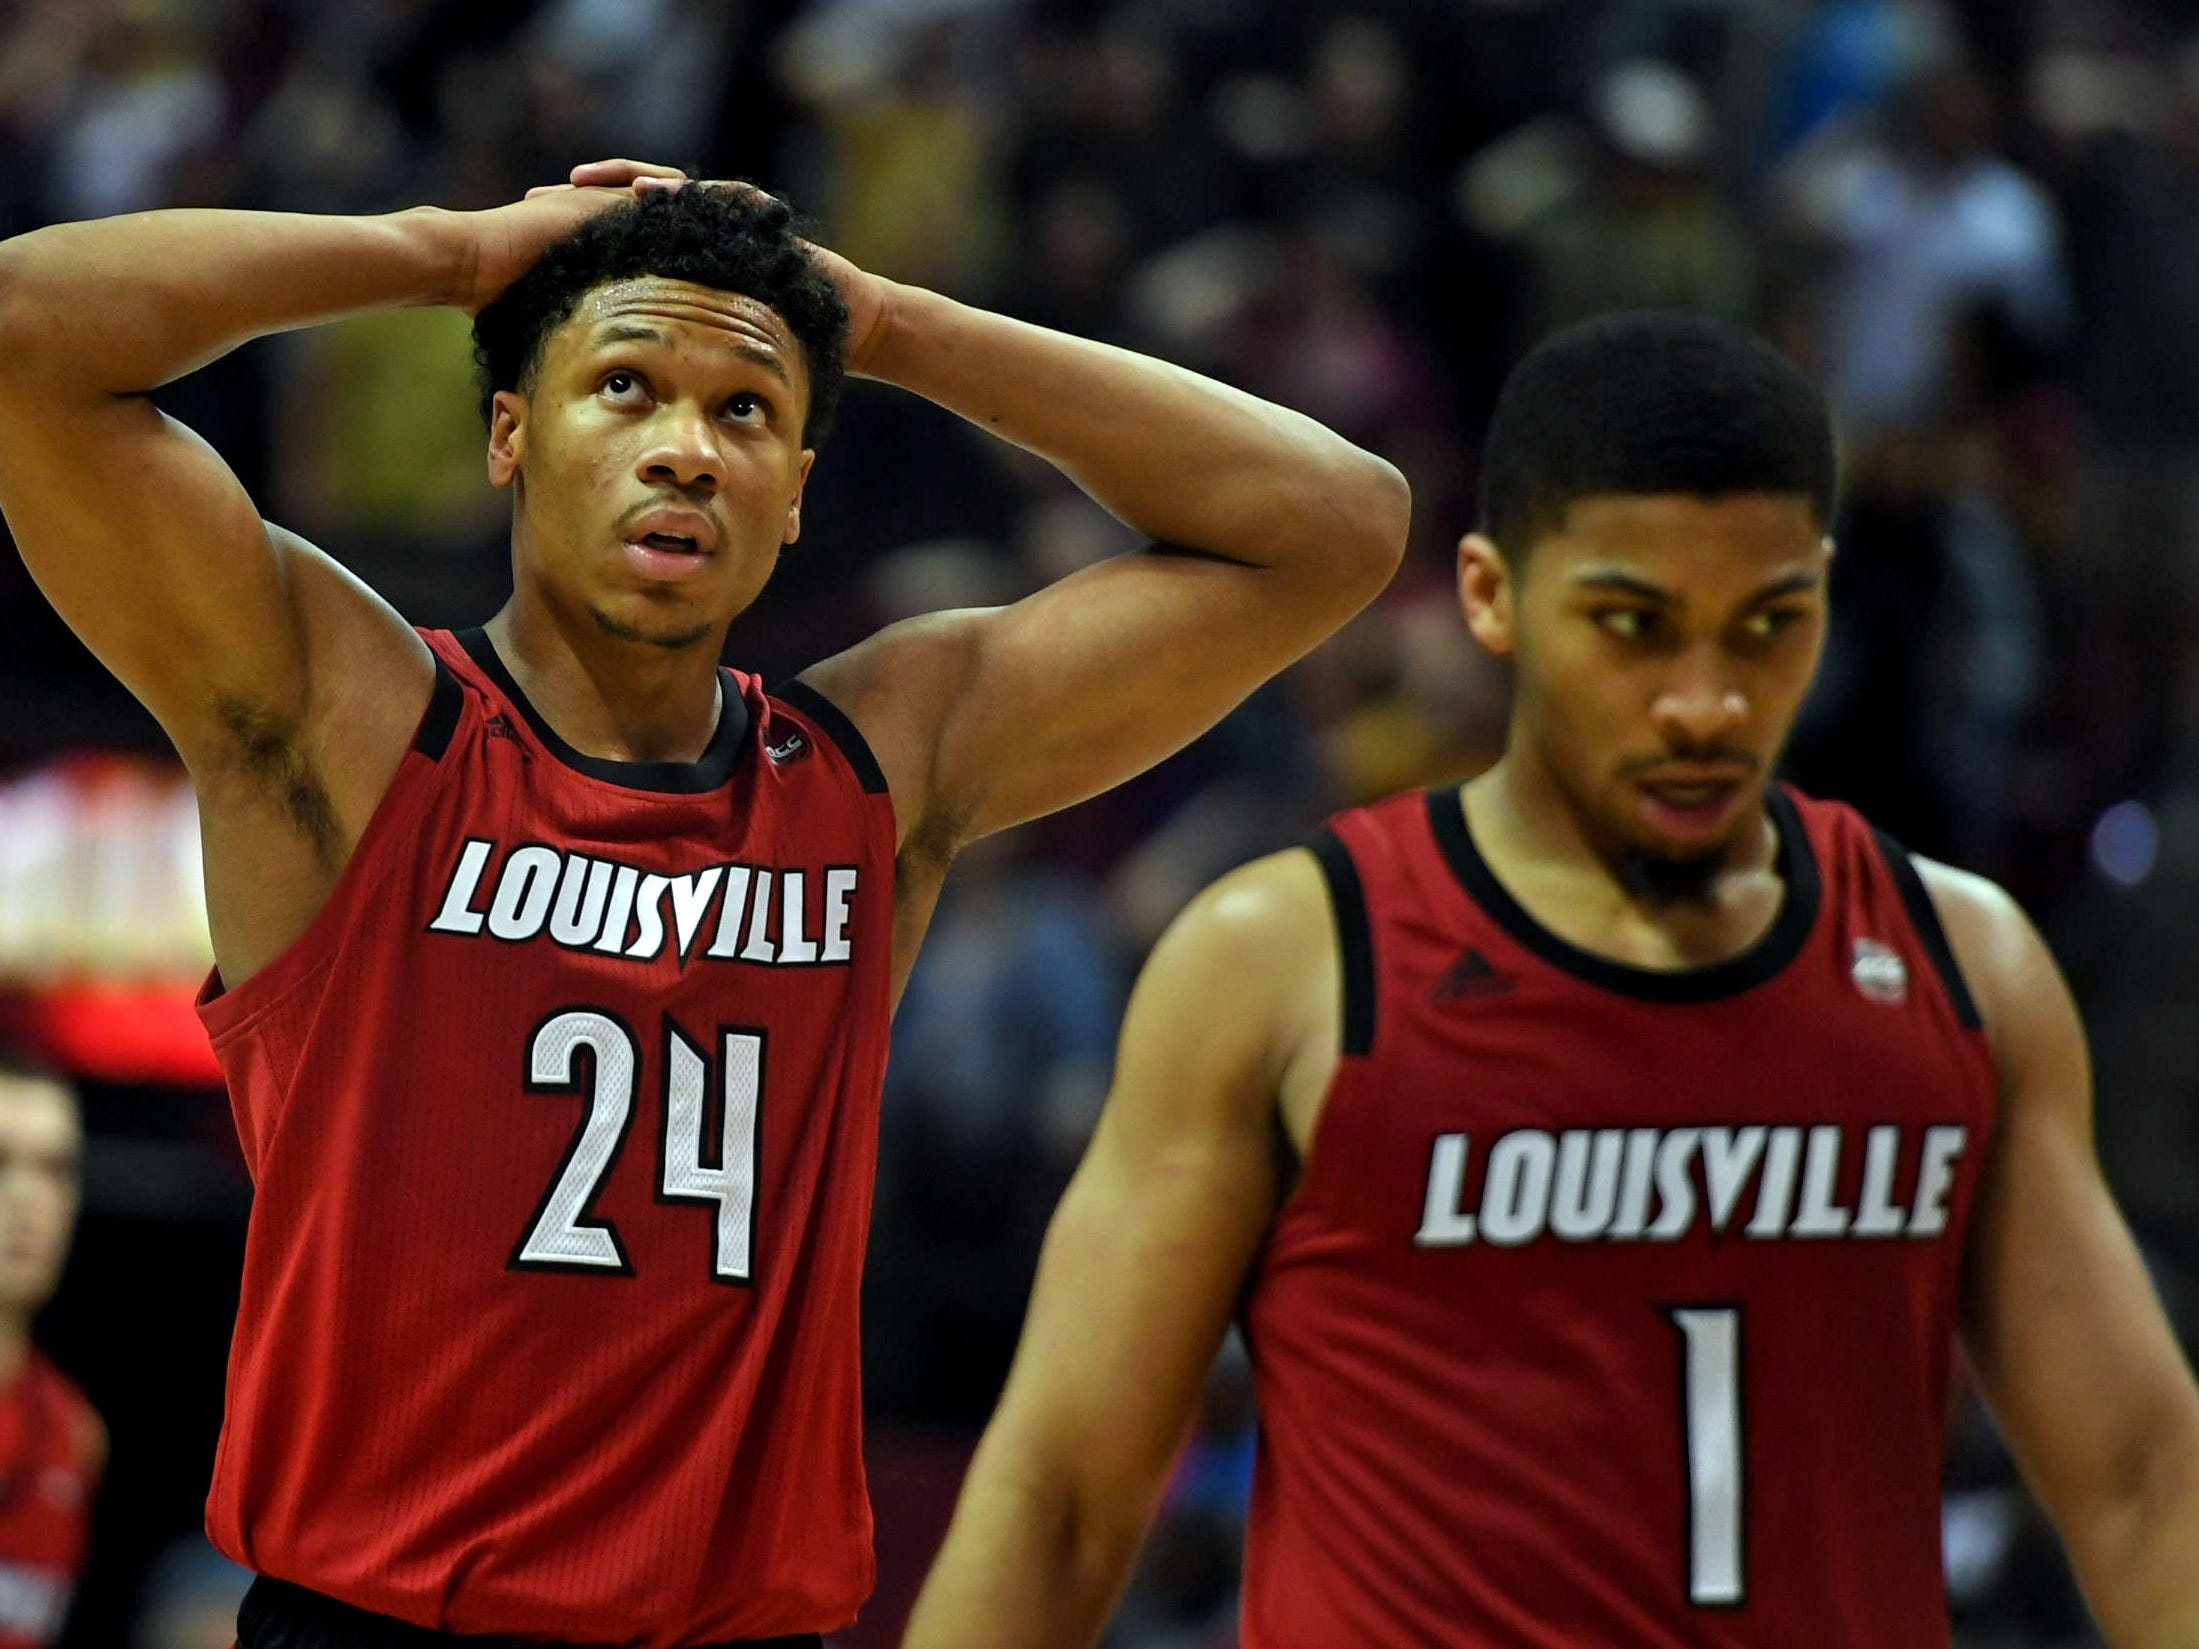 Louisville Cardinals forward Dwayne Sutton (24) reacts during overtime against the Florida State Seminoles at Donald L. Tucker Center in Tallahassee, Florida, on Saturday, Feb. 9, 2019.